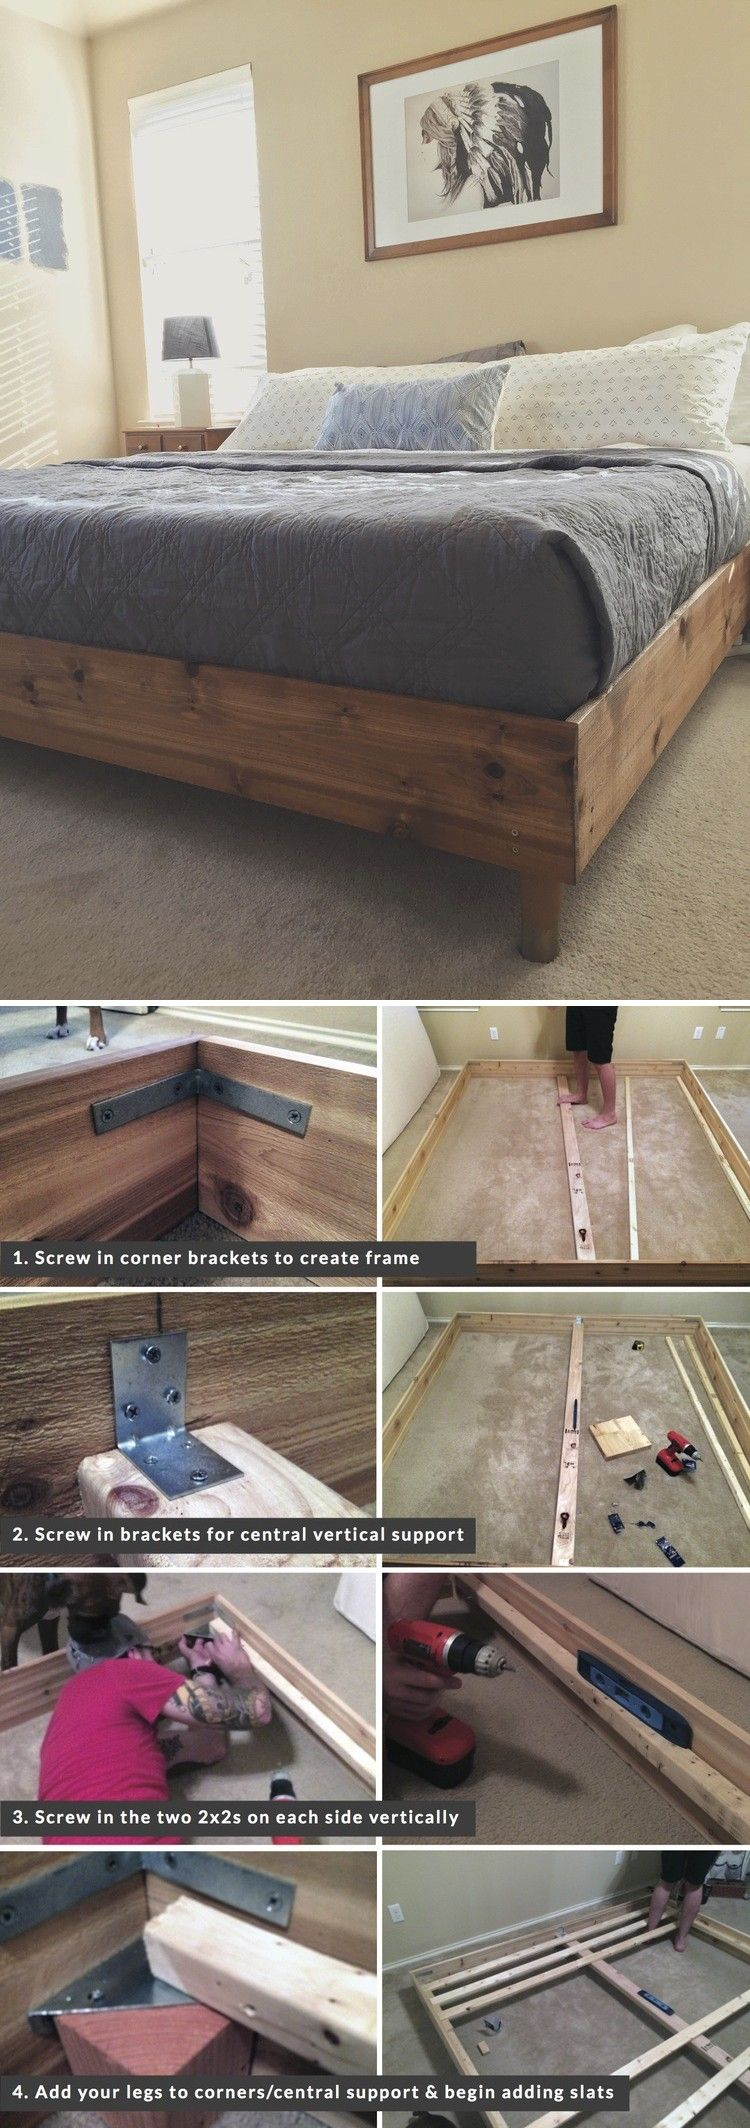 36 Easy Diy Bed Frame Projects To Upgrade Your Bedroom Diy Bed